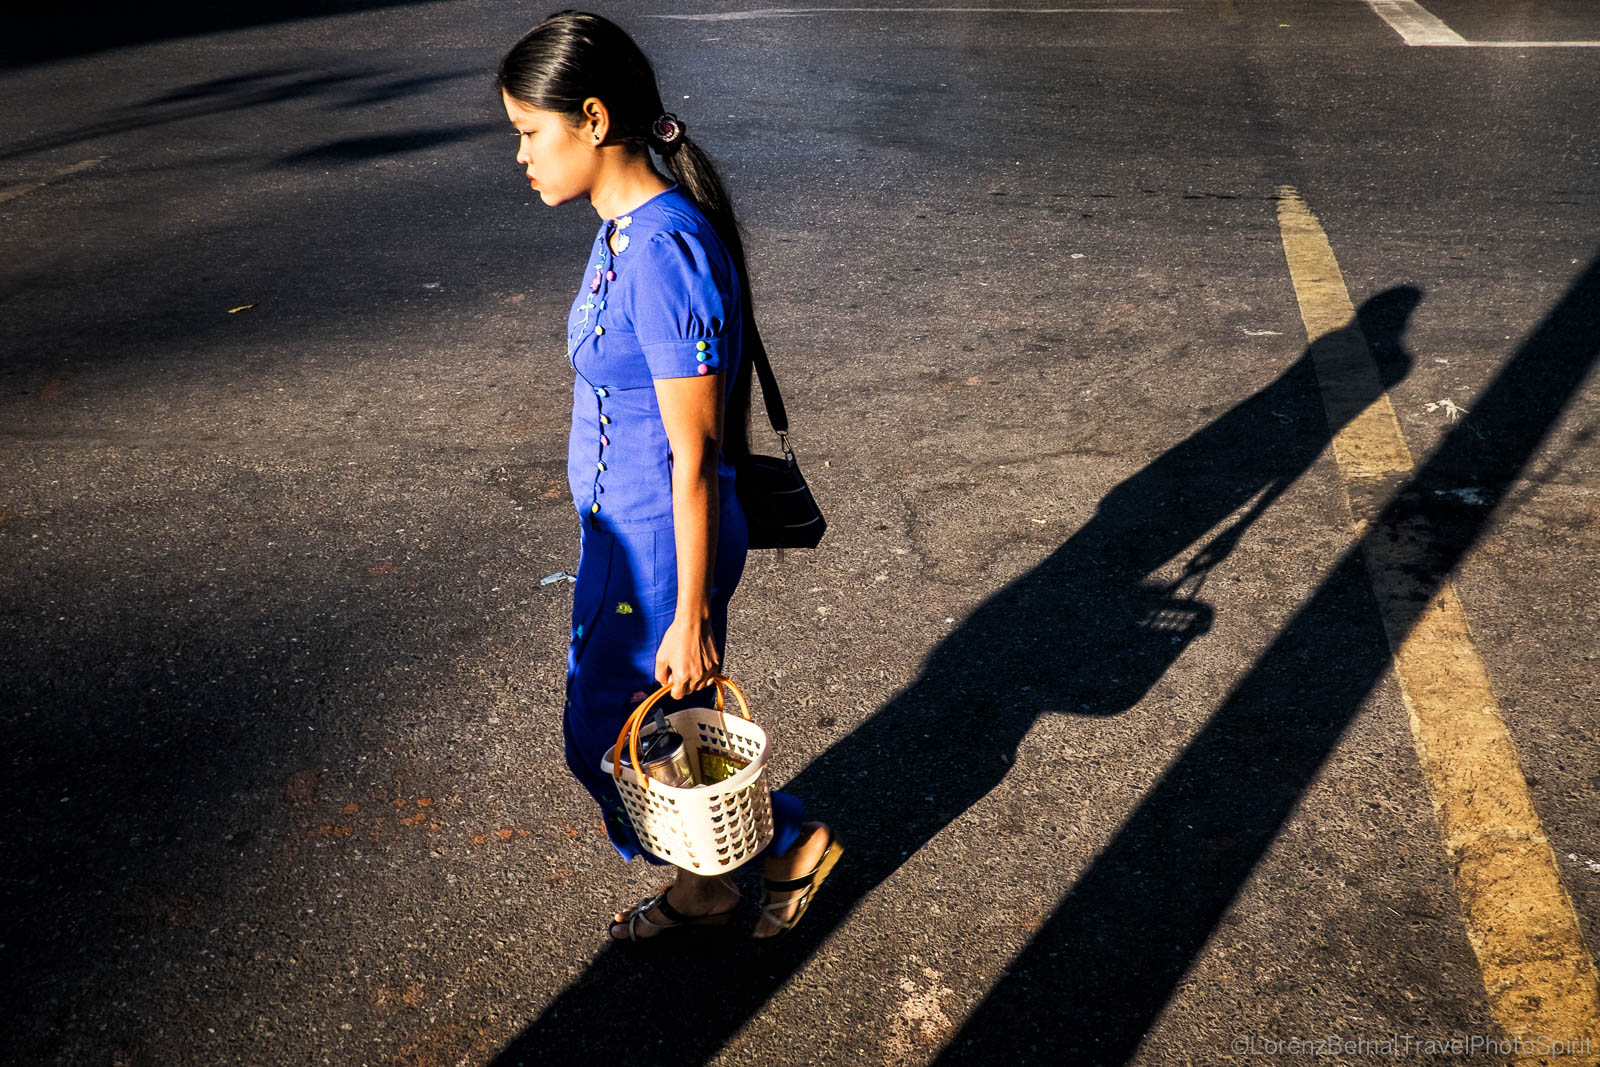 Street Photography in Yangon : playing with the morning lights on a crossroads.